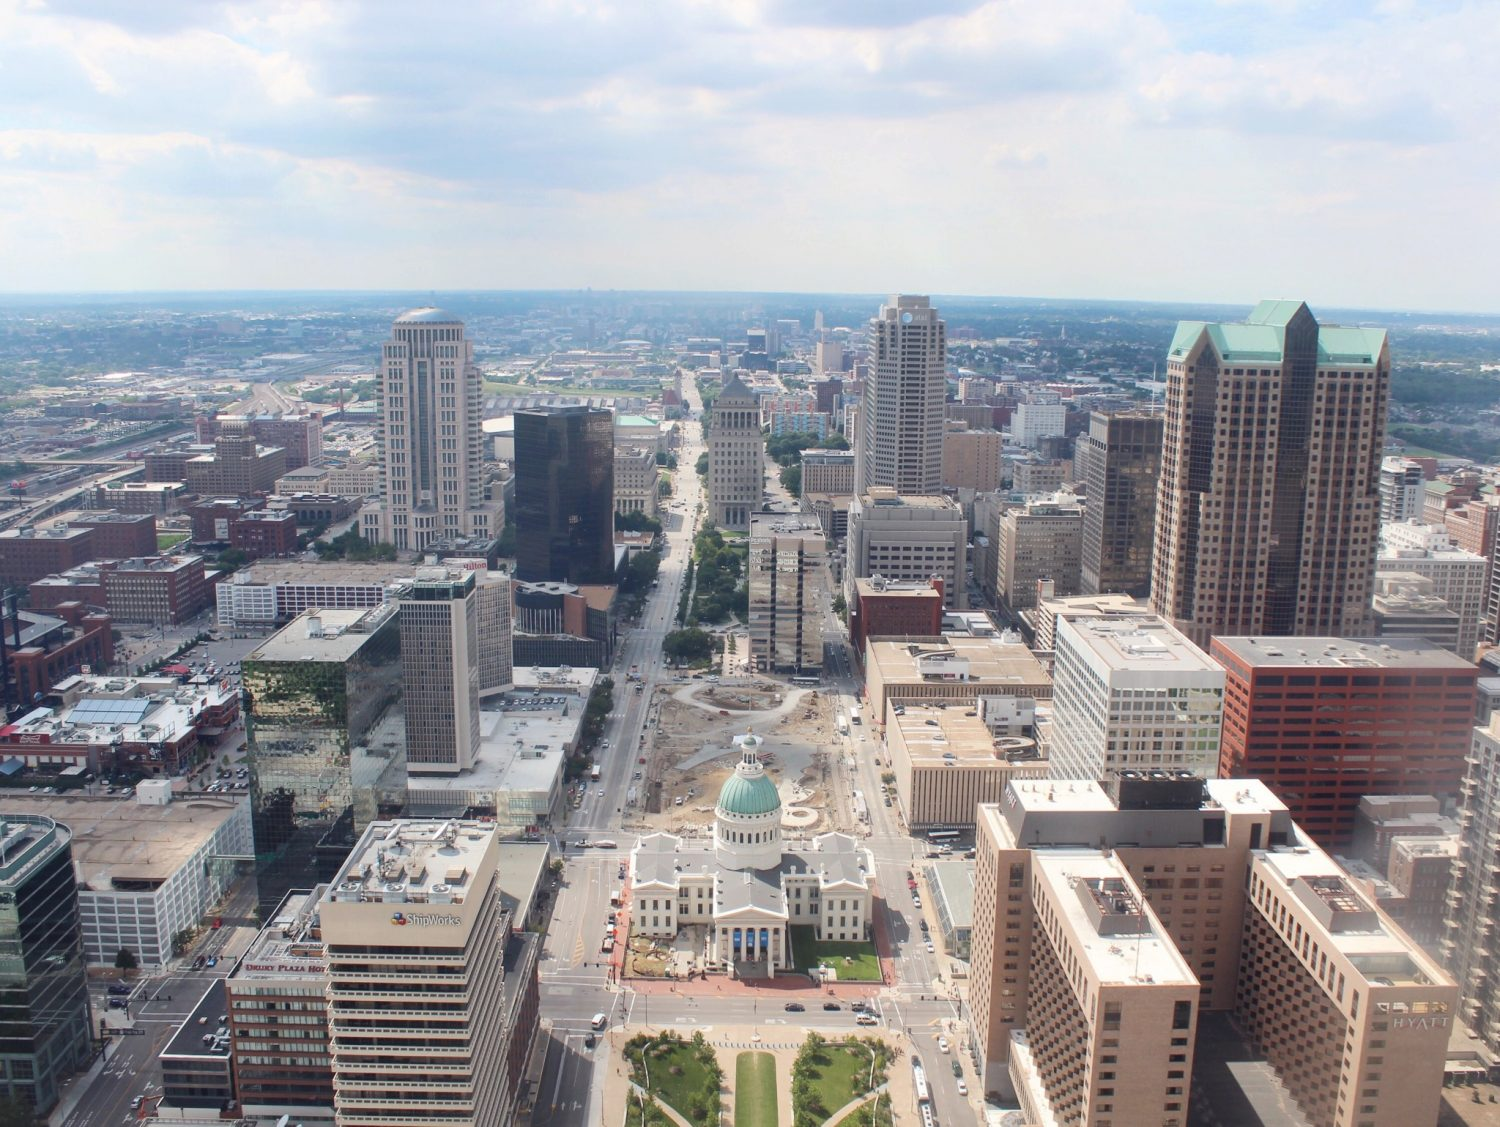 View from the St. Louis Arch